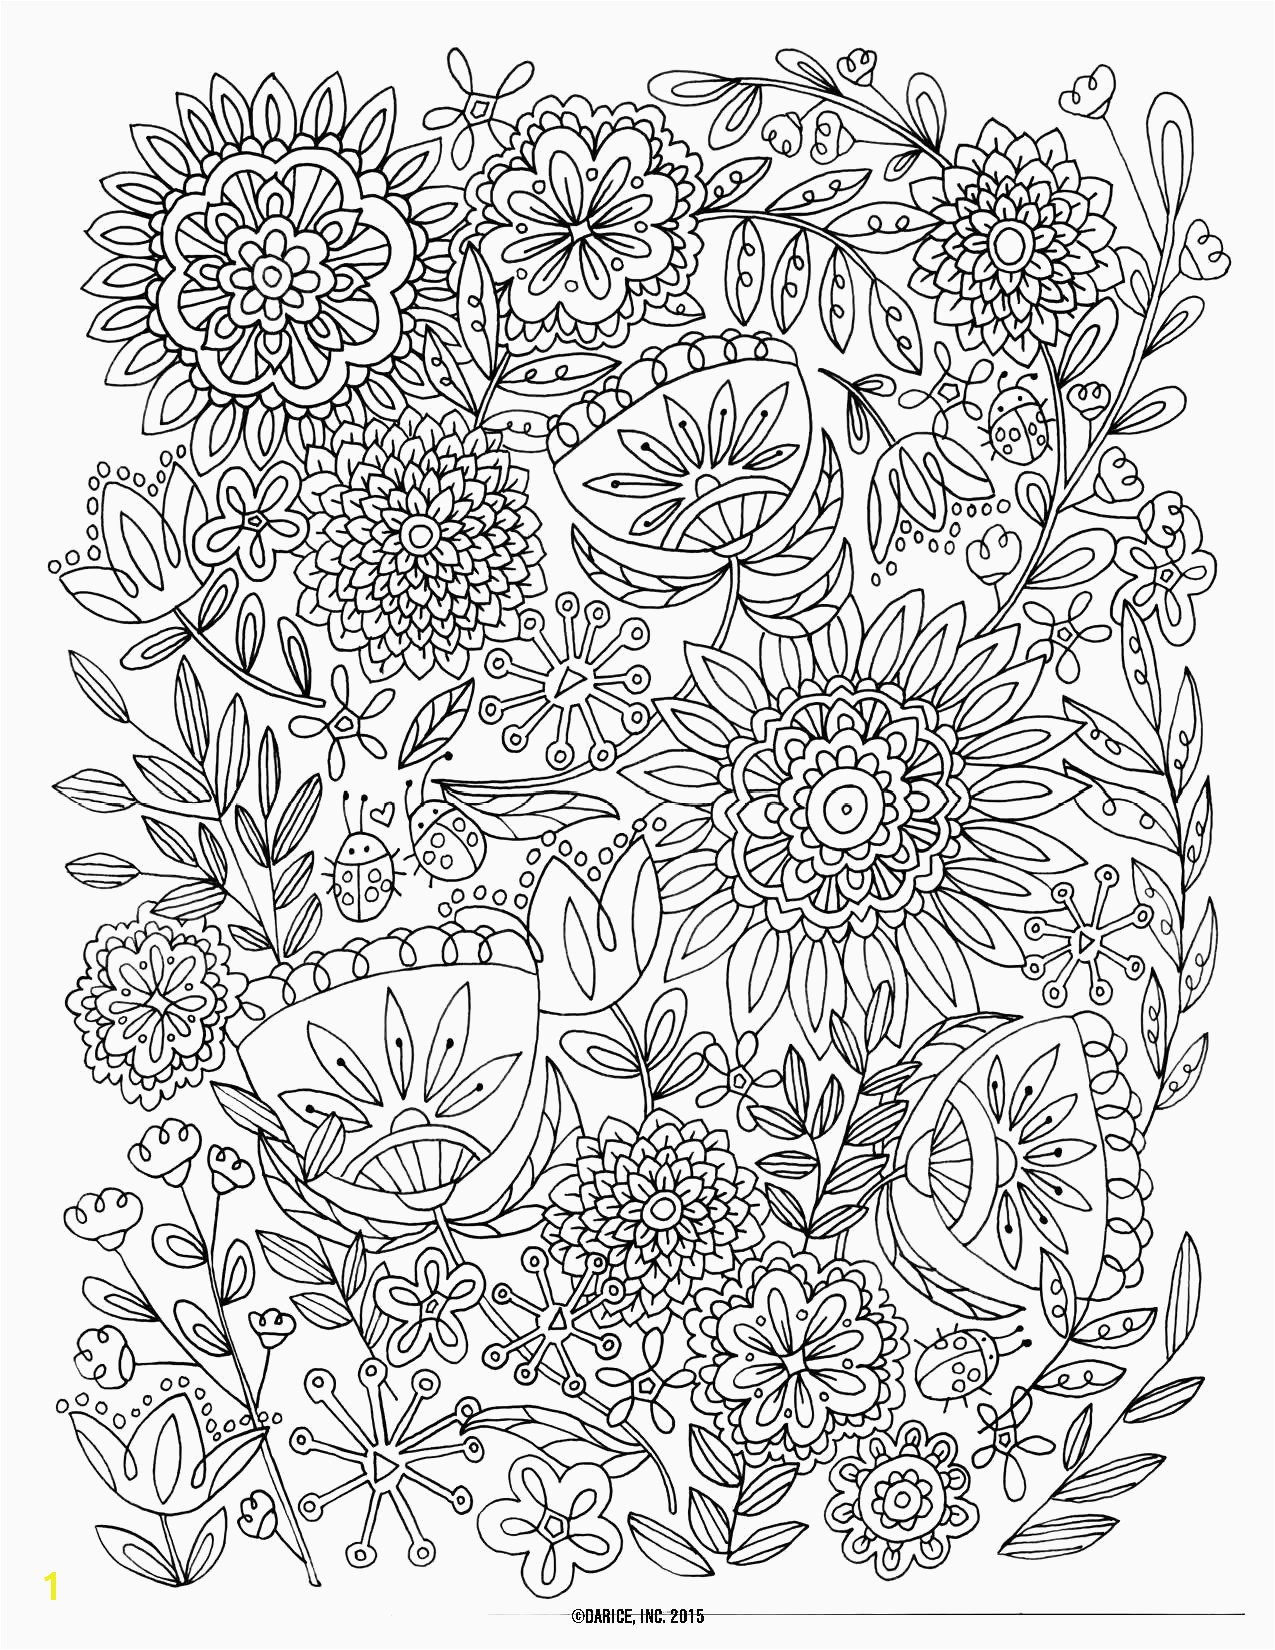 Best Coloring Sheet Websites Gallery